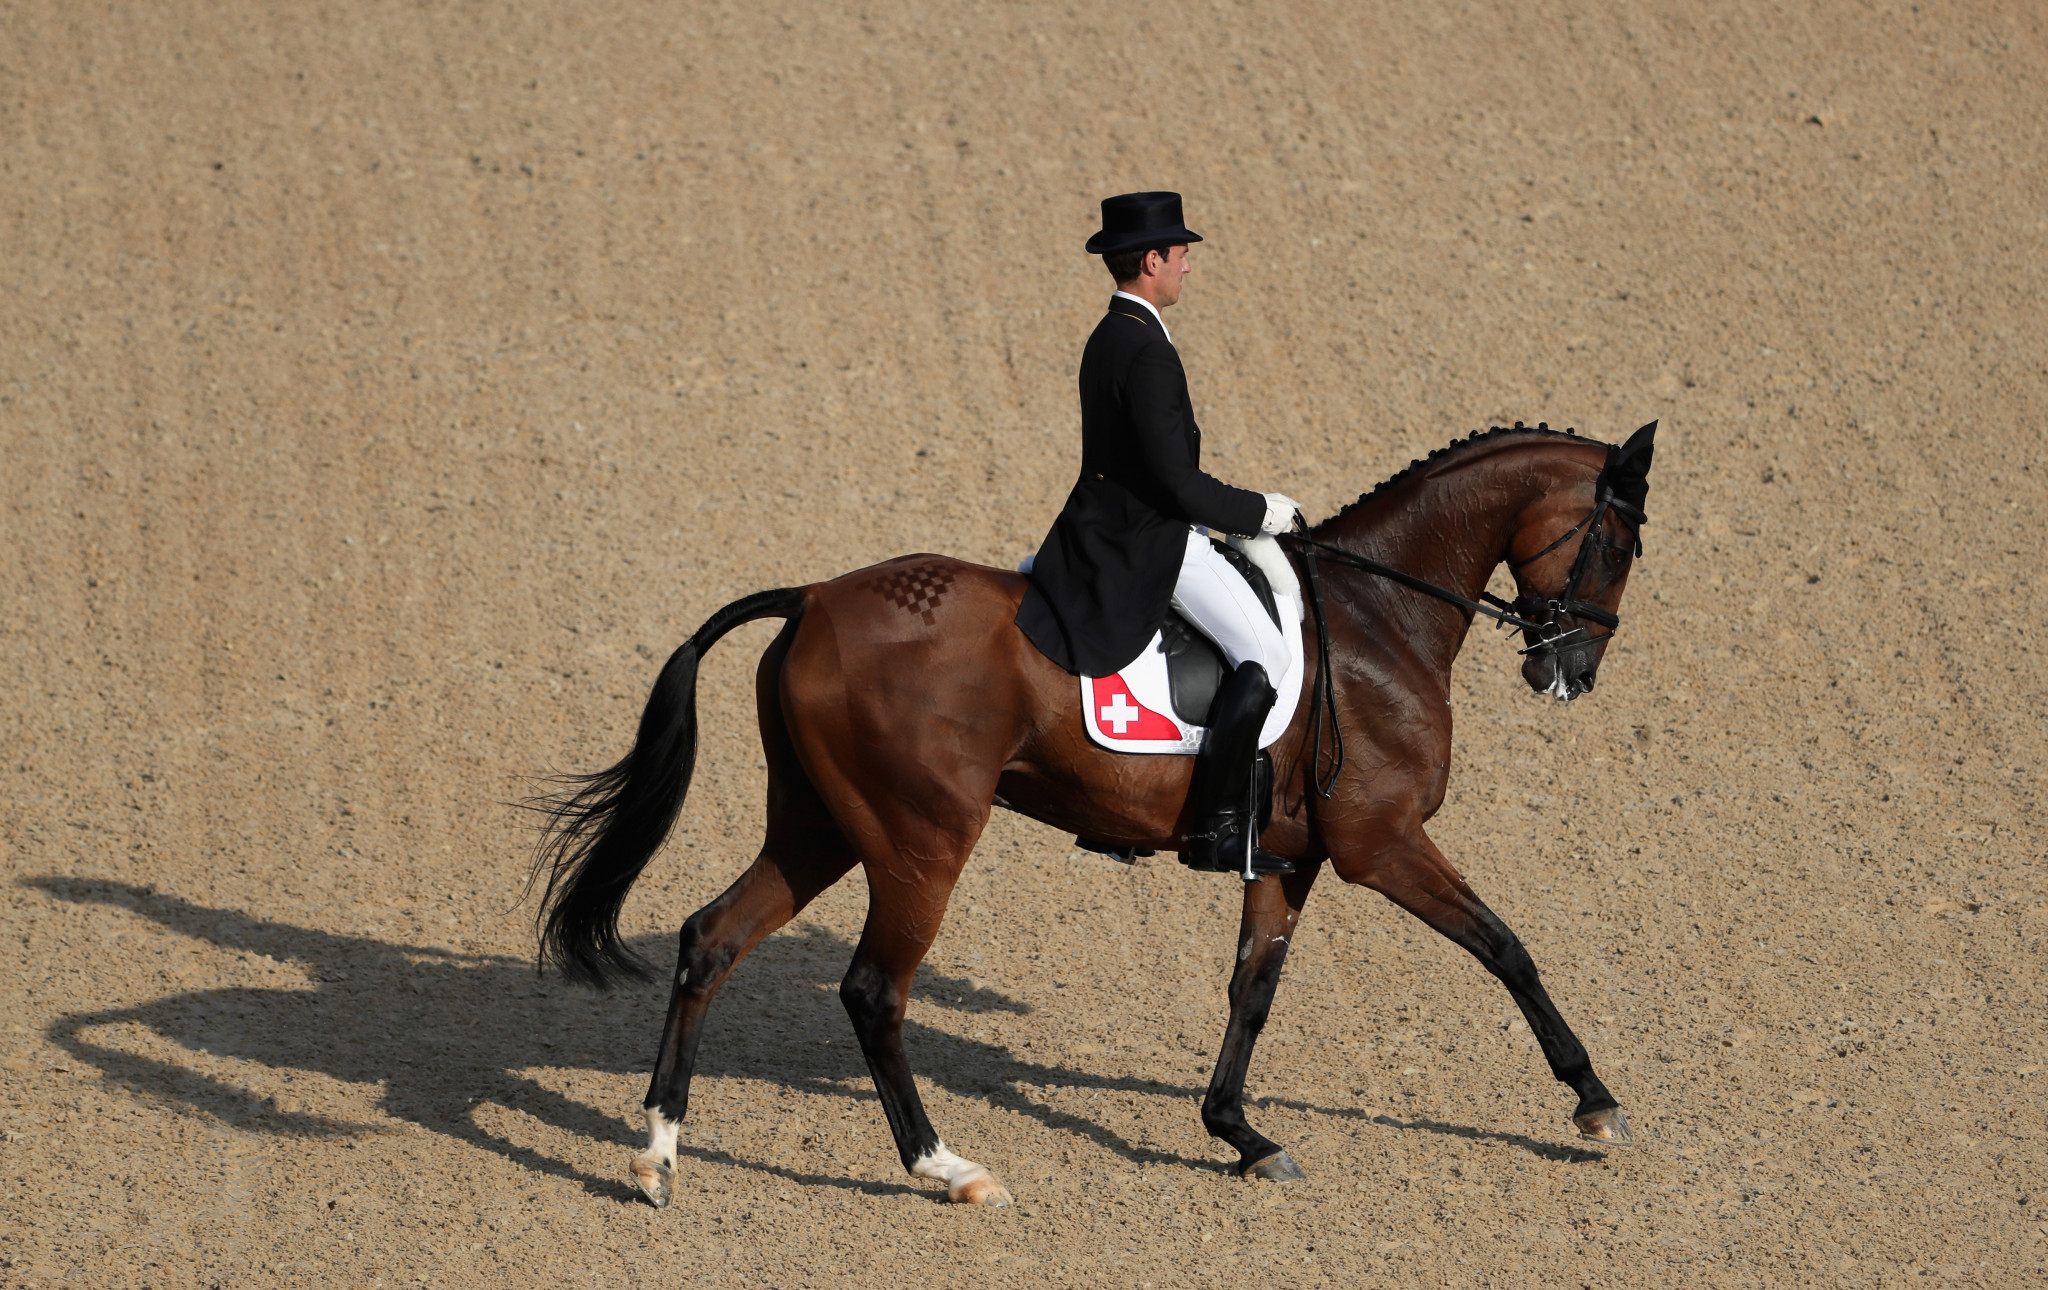 Switzerland out in front after first part of dressage at FEI Eventing Nations Cup